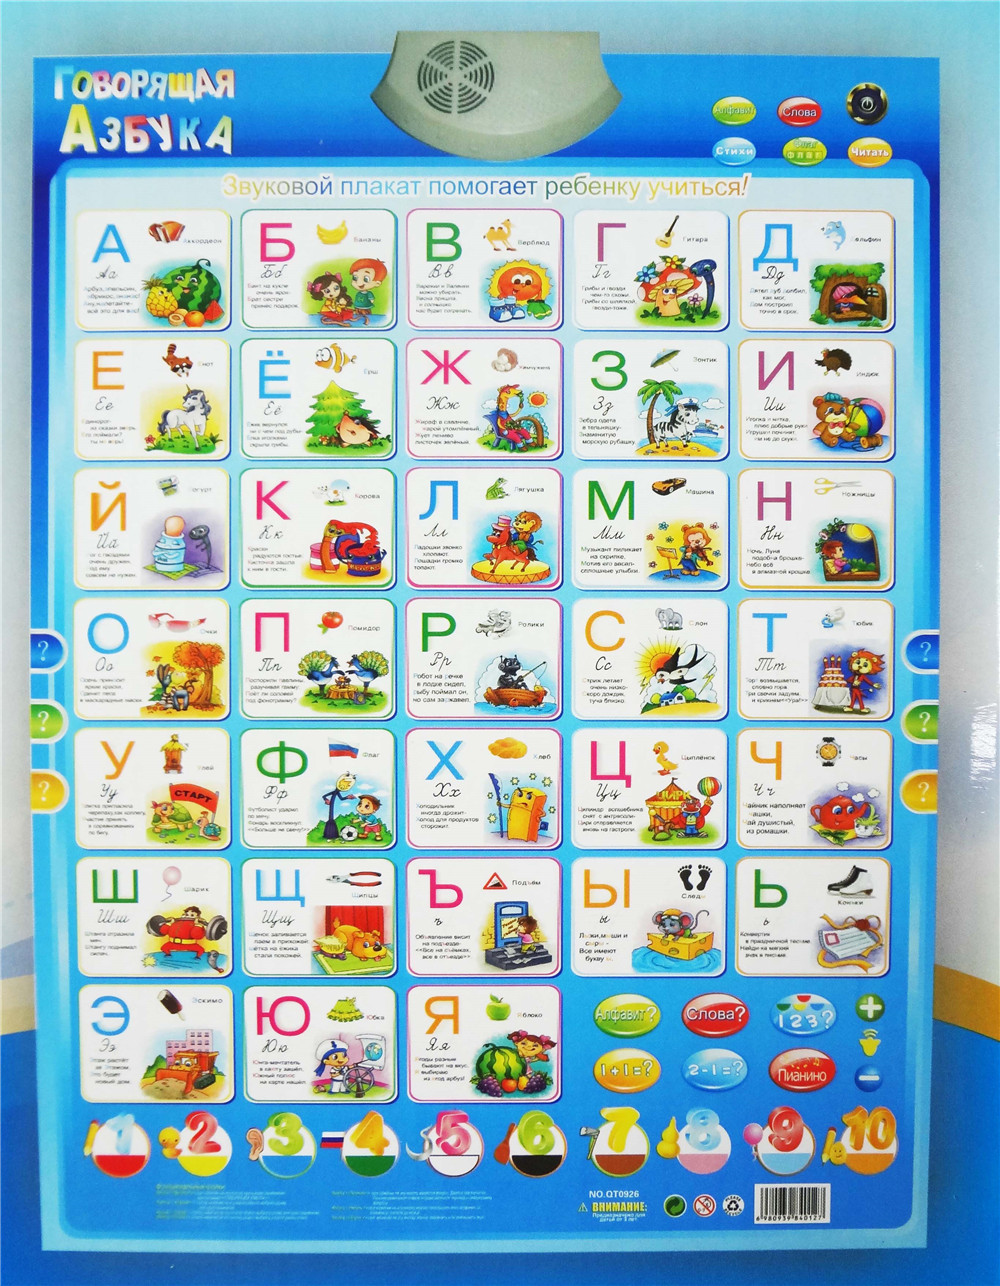 Russian language sound poster Alphabet Music Learning Machine Phonic Wall Hanging Chart Electronic toys for kids(China (Mainland))